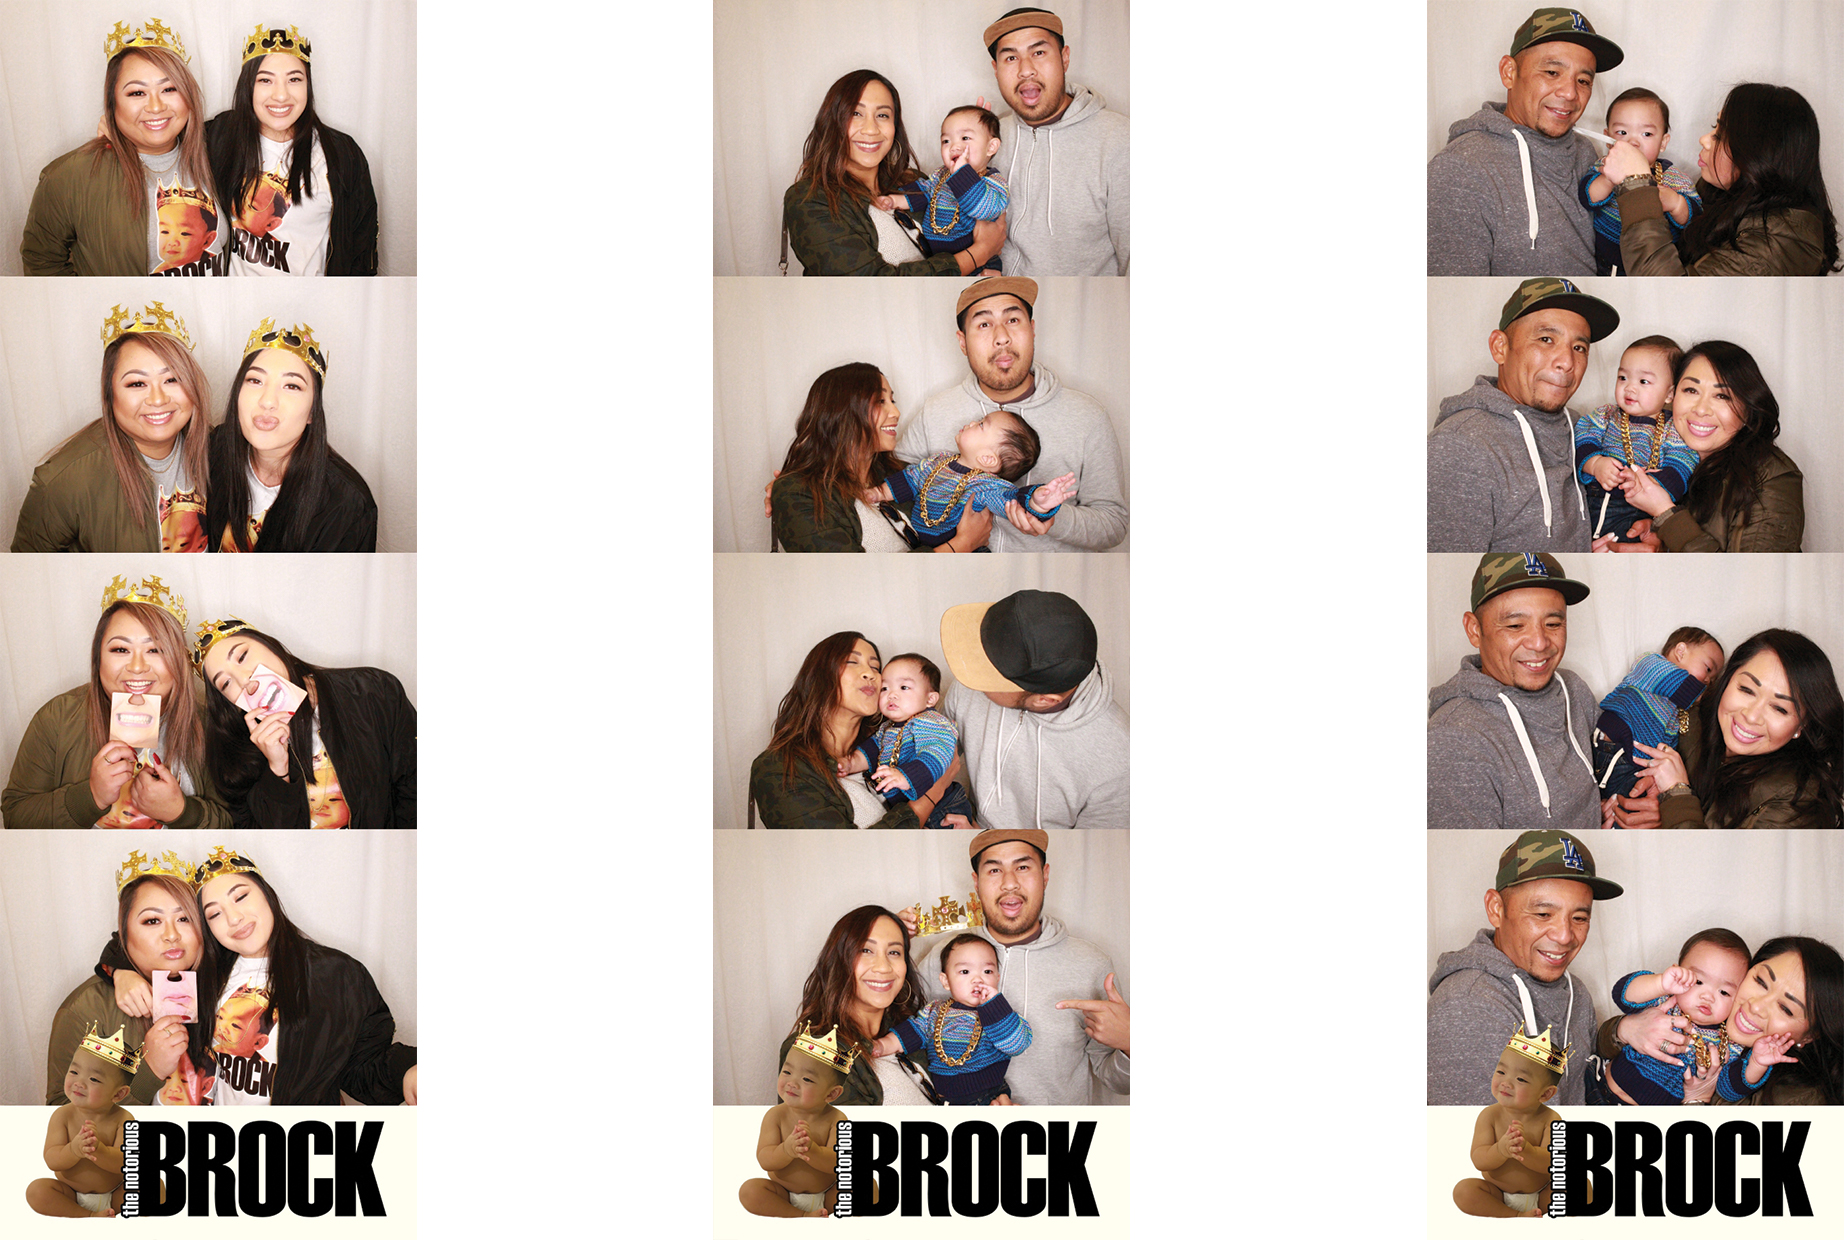 Brock's Birthday